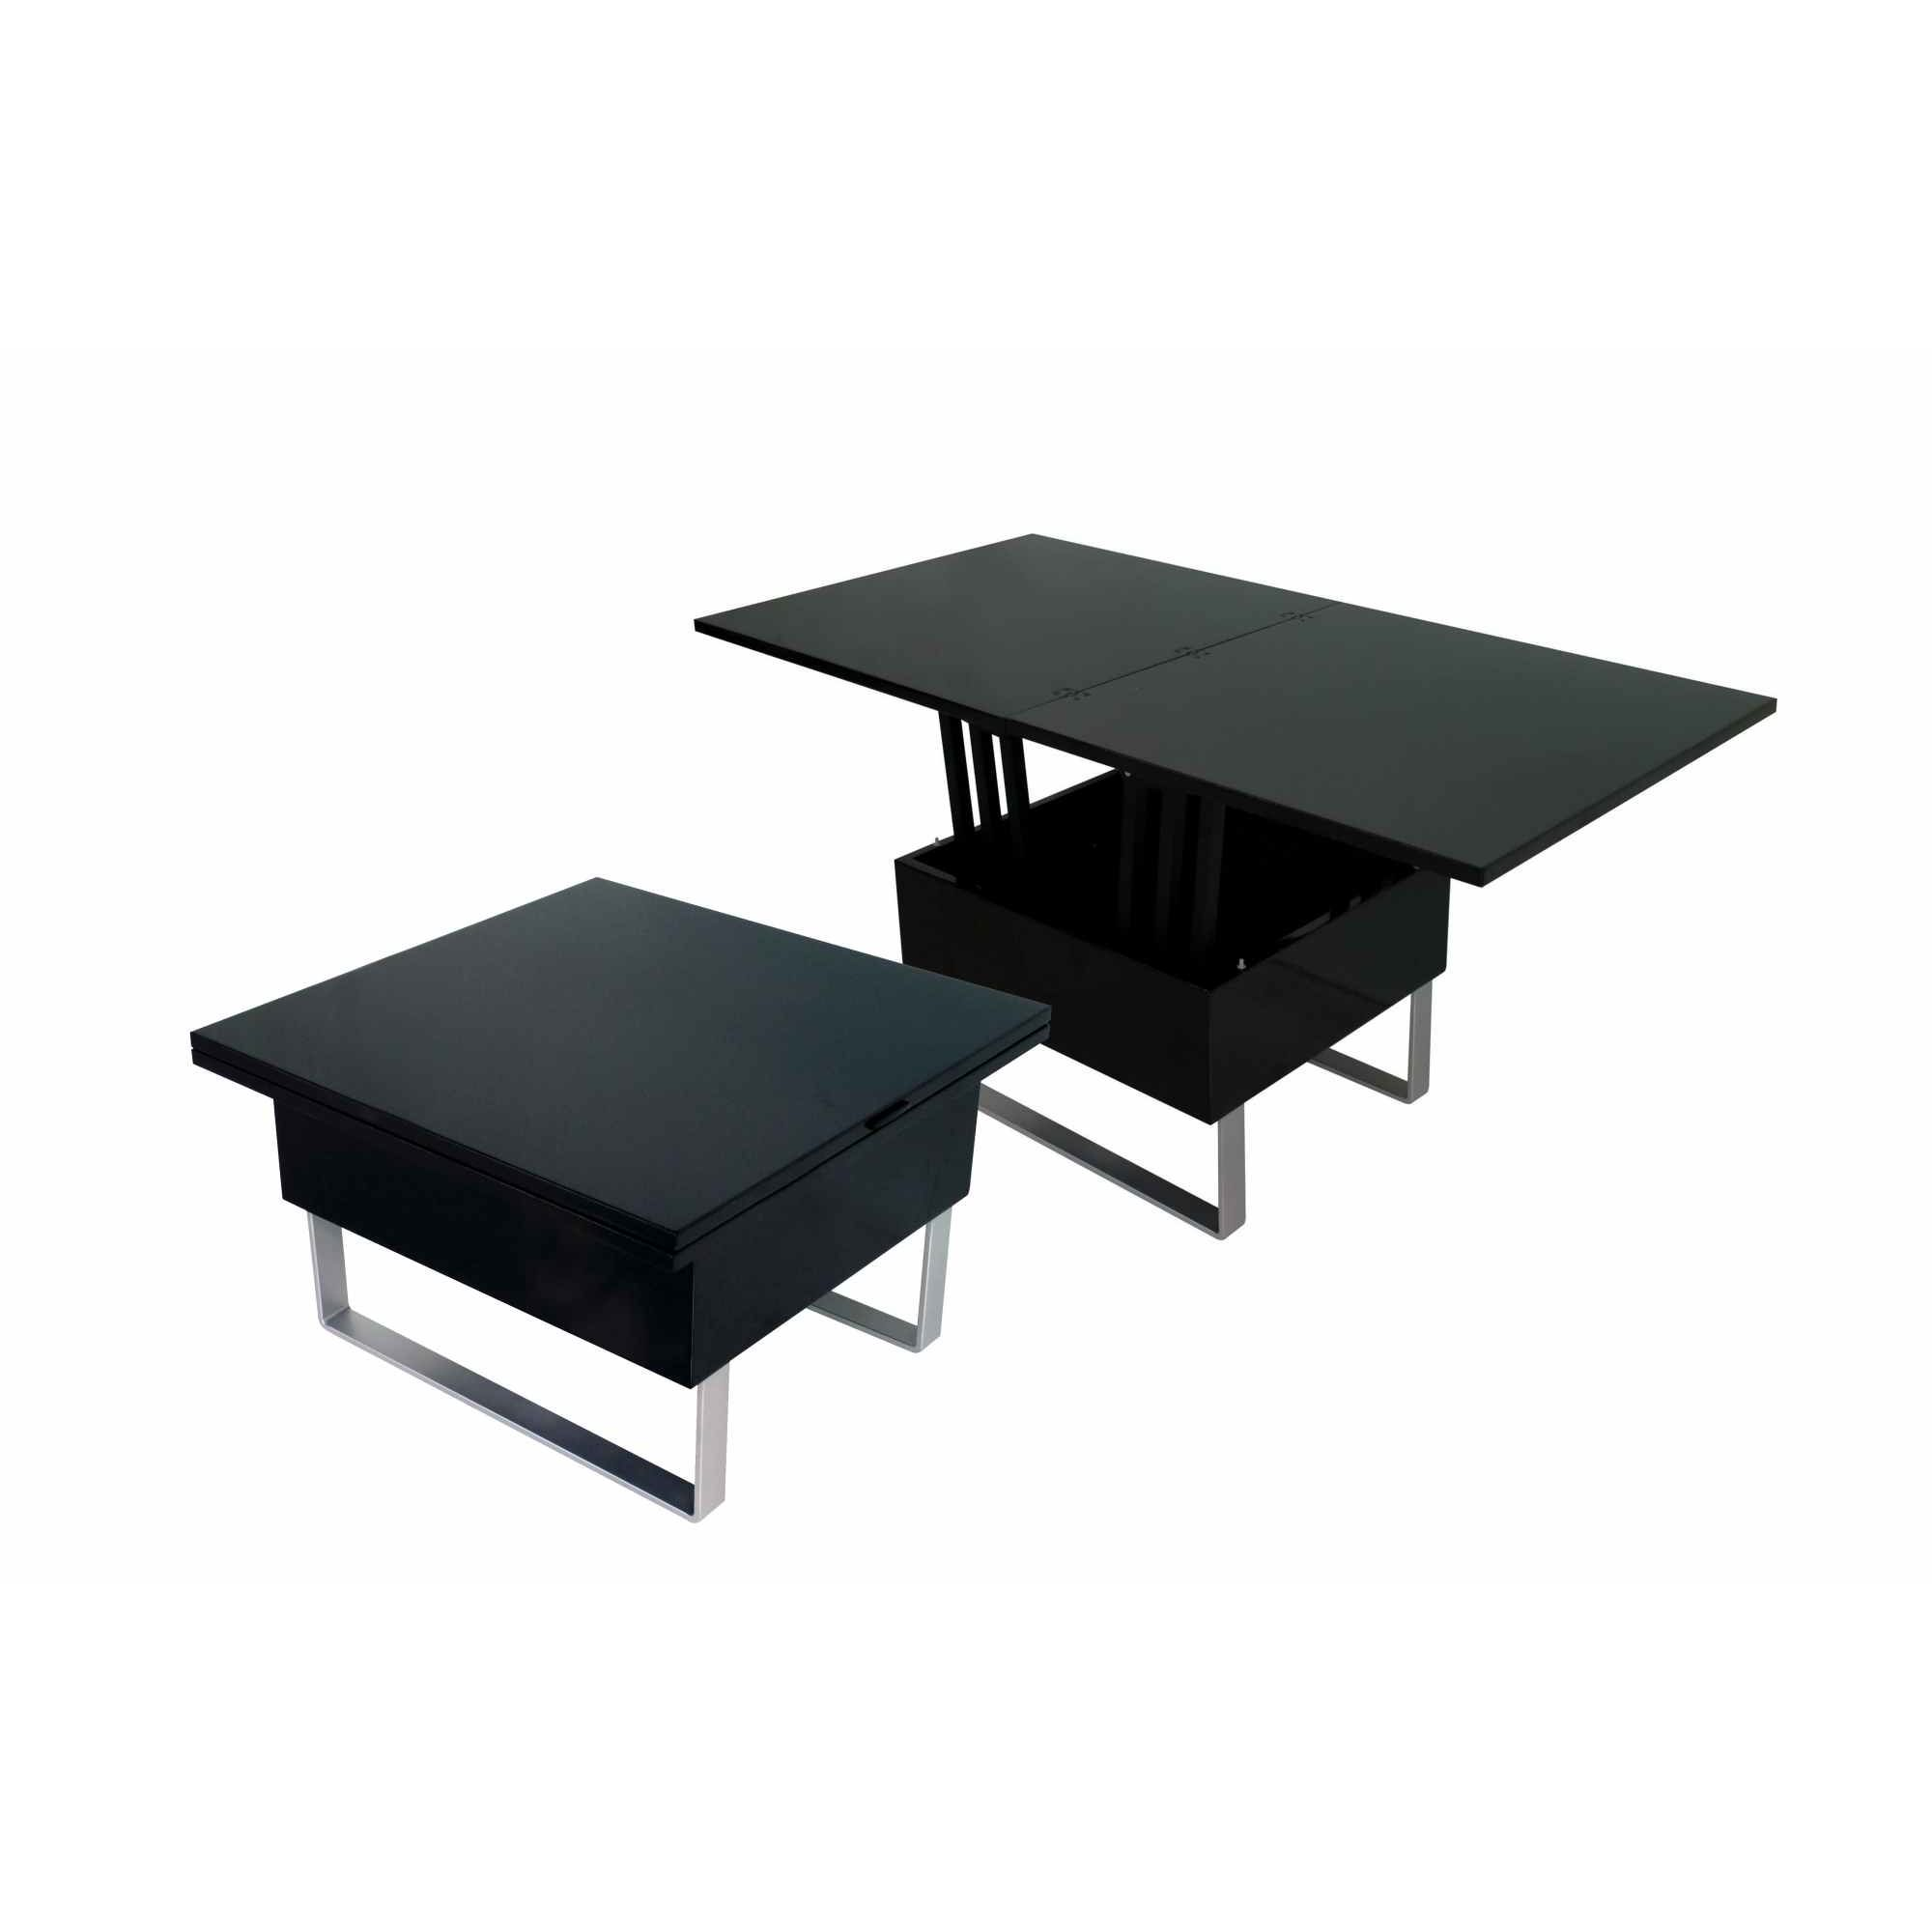 Table basse relevable paris - Table basse relevable design ...